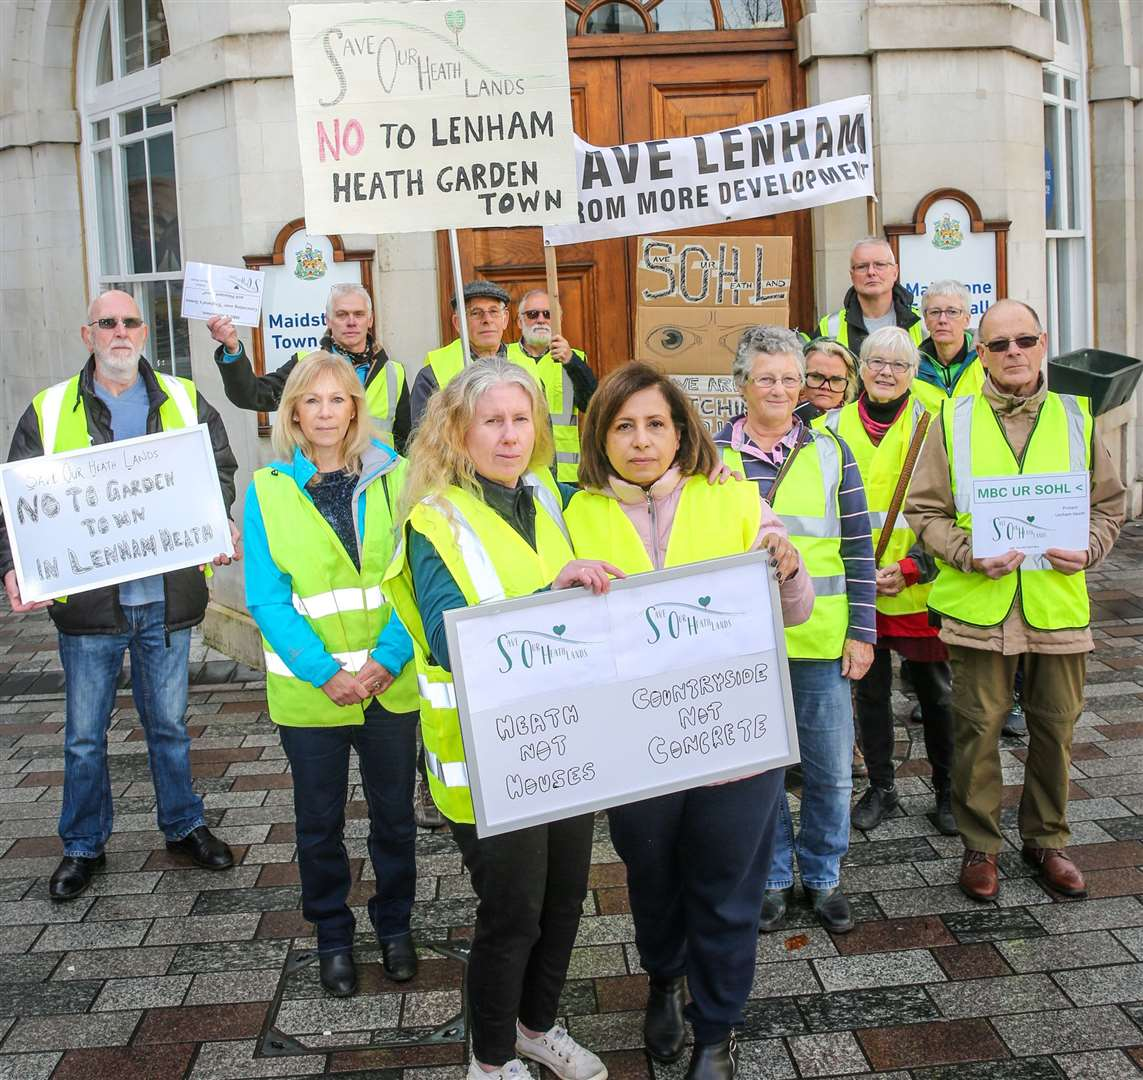 Campaigners oppose plans to build 4,000 homes to the east of Lenham Picture: Matthew Walker